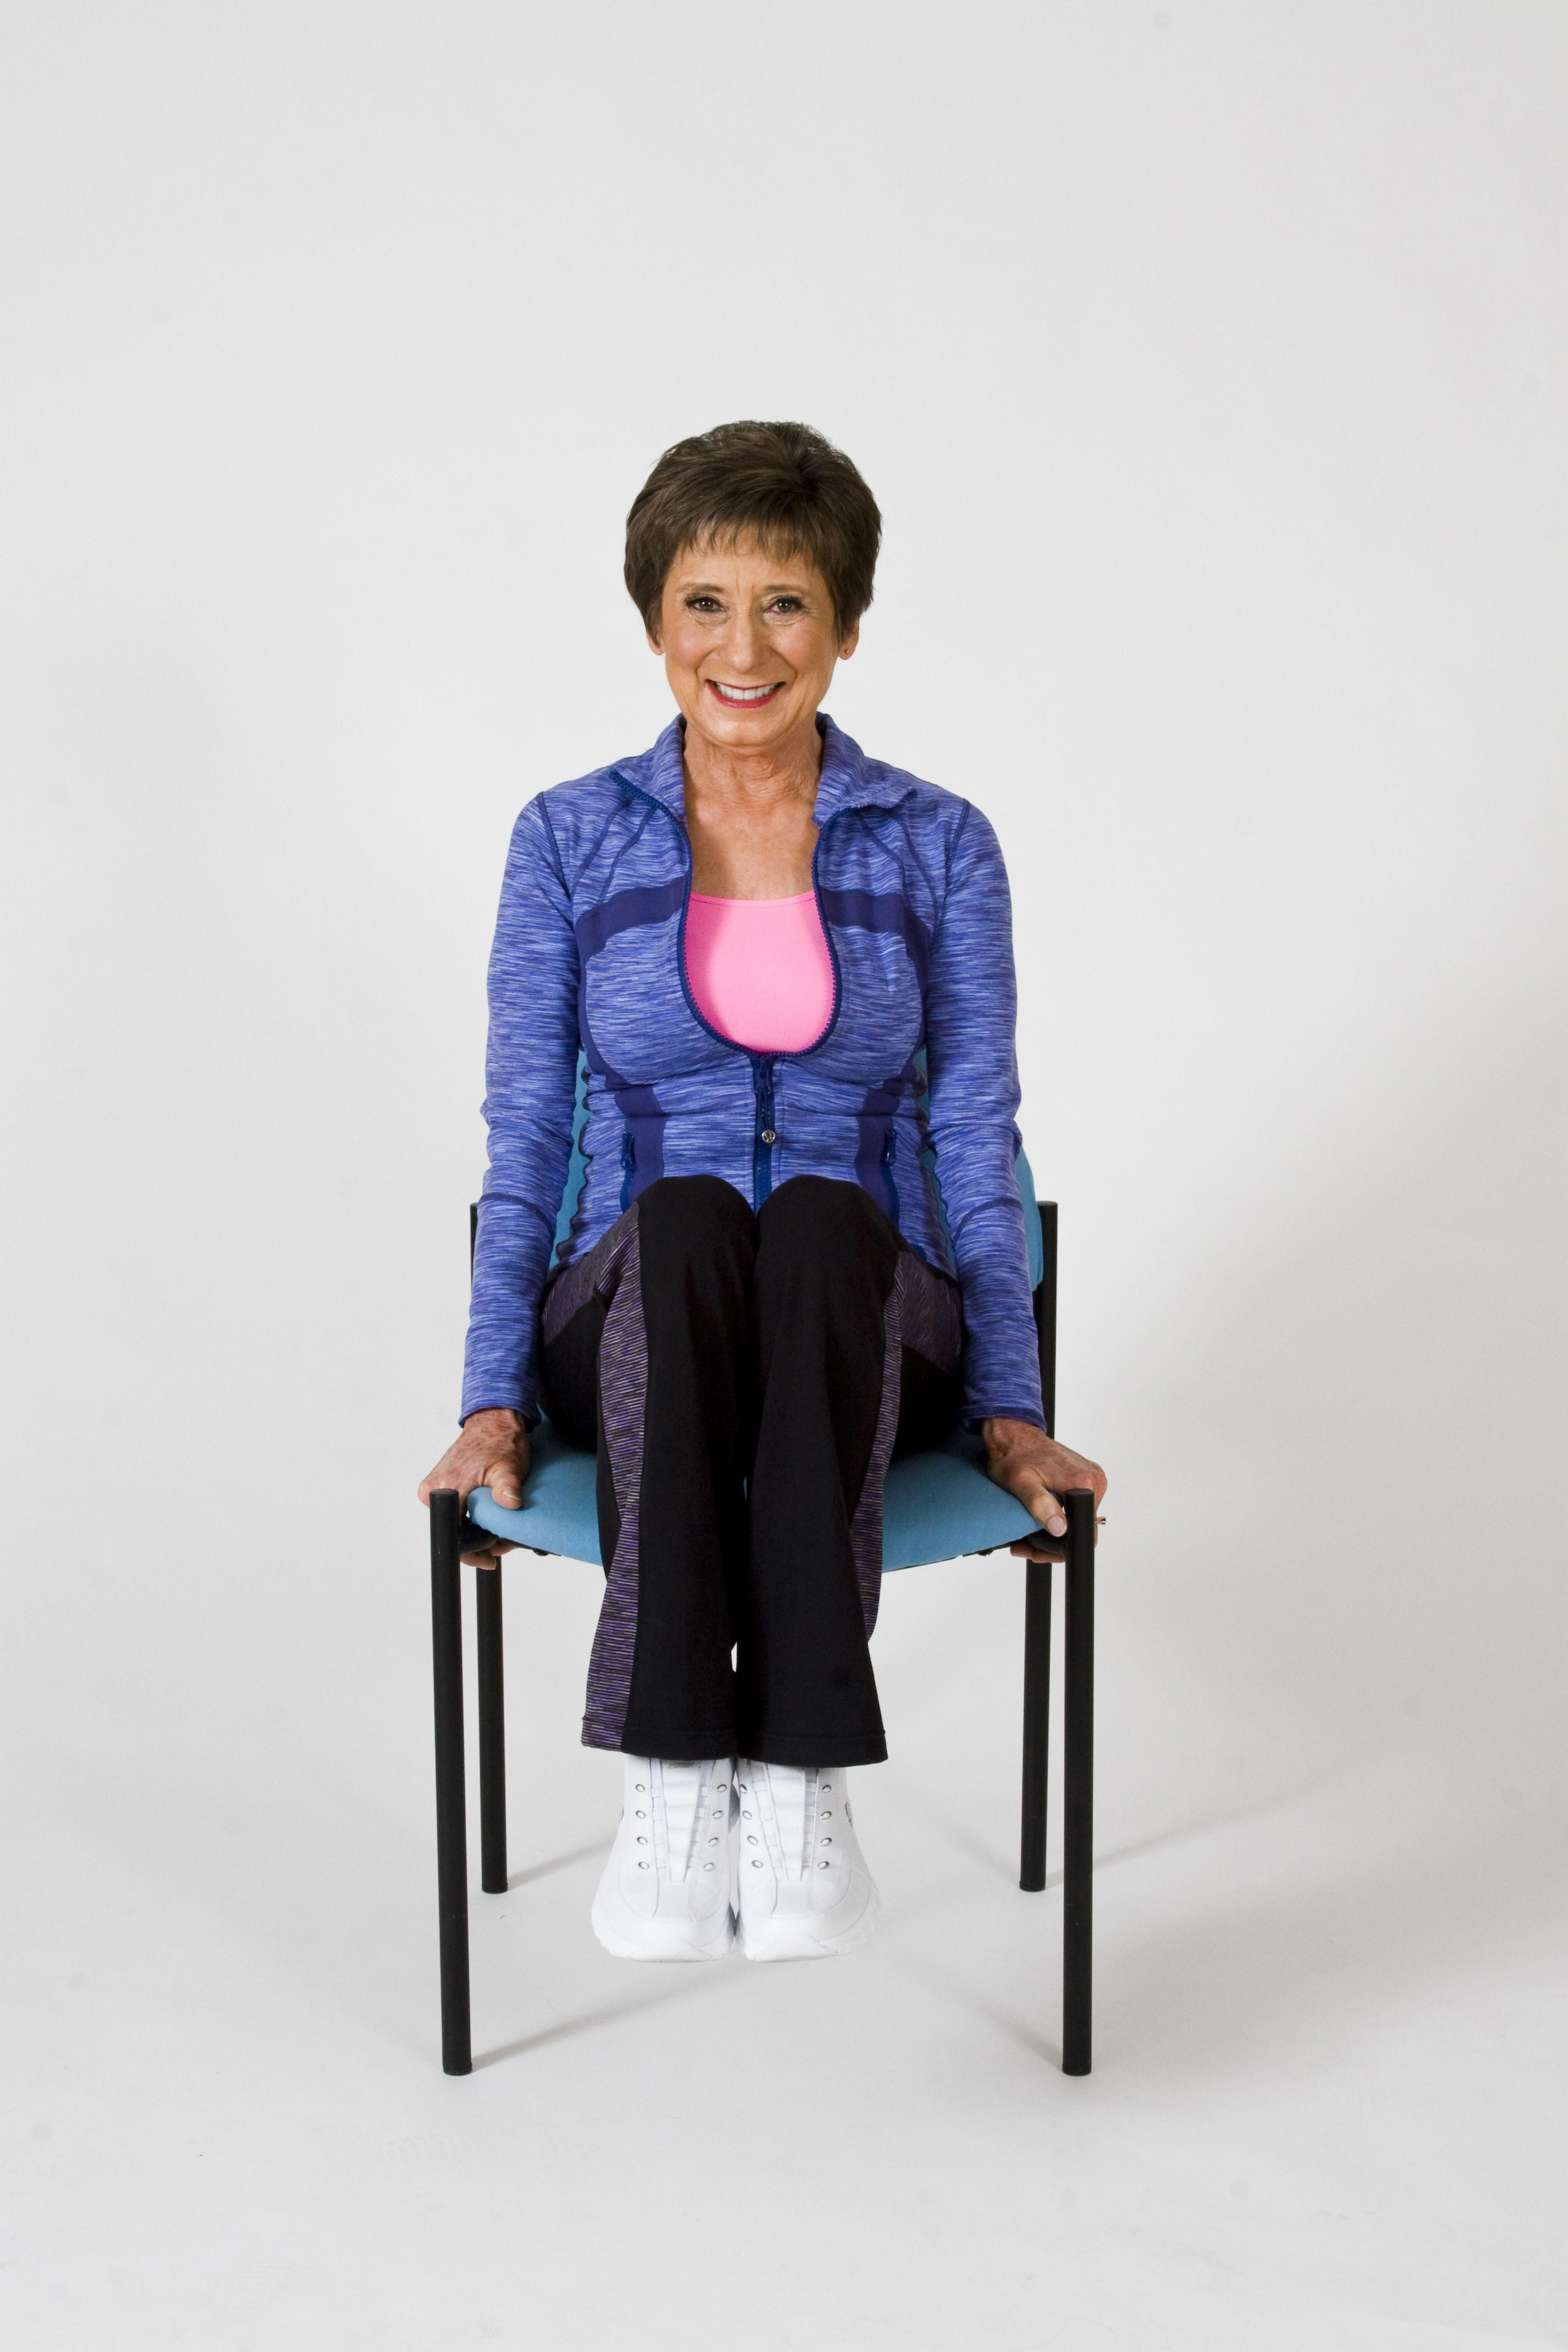 Sample workouts Senior fitness, Exercise, Healthy aging